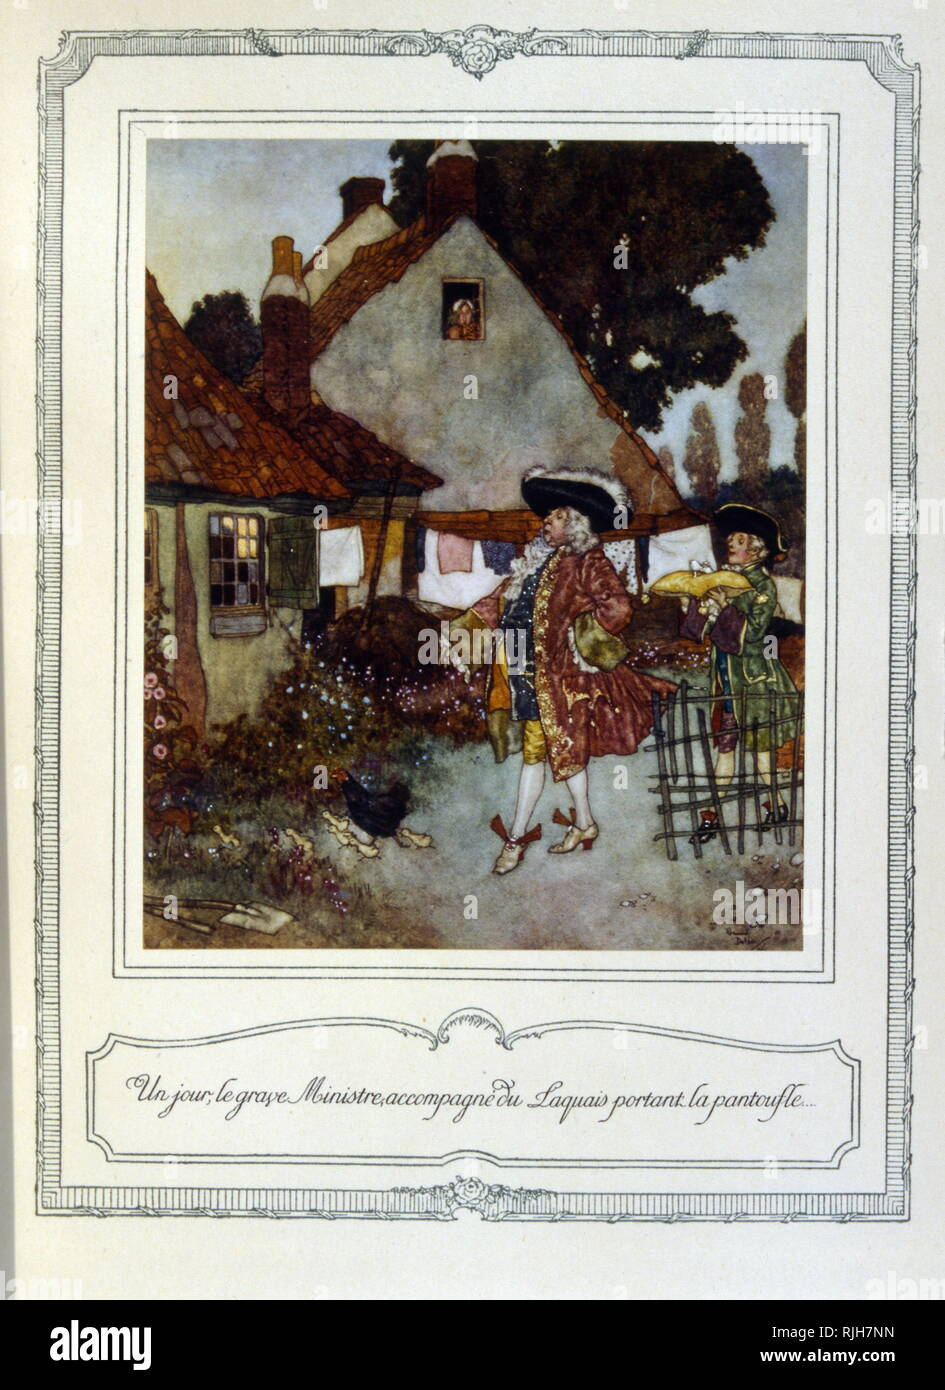 Chromolithograph of the story of Cendrillon (Cinderella). The good fairy godmother visits Cinderella. 1900 - Stock Image